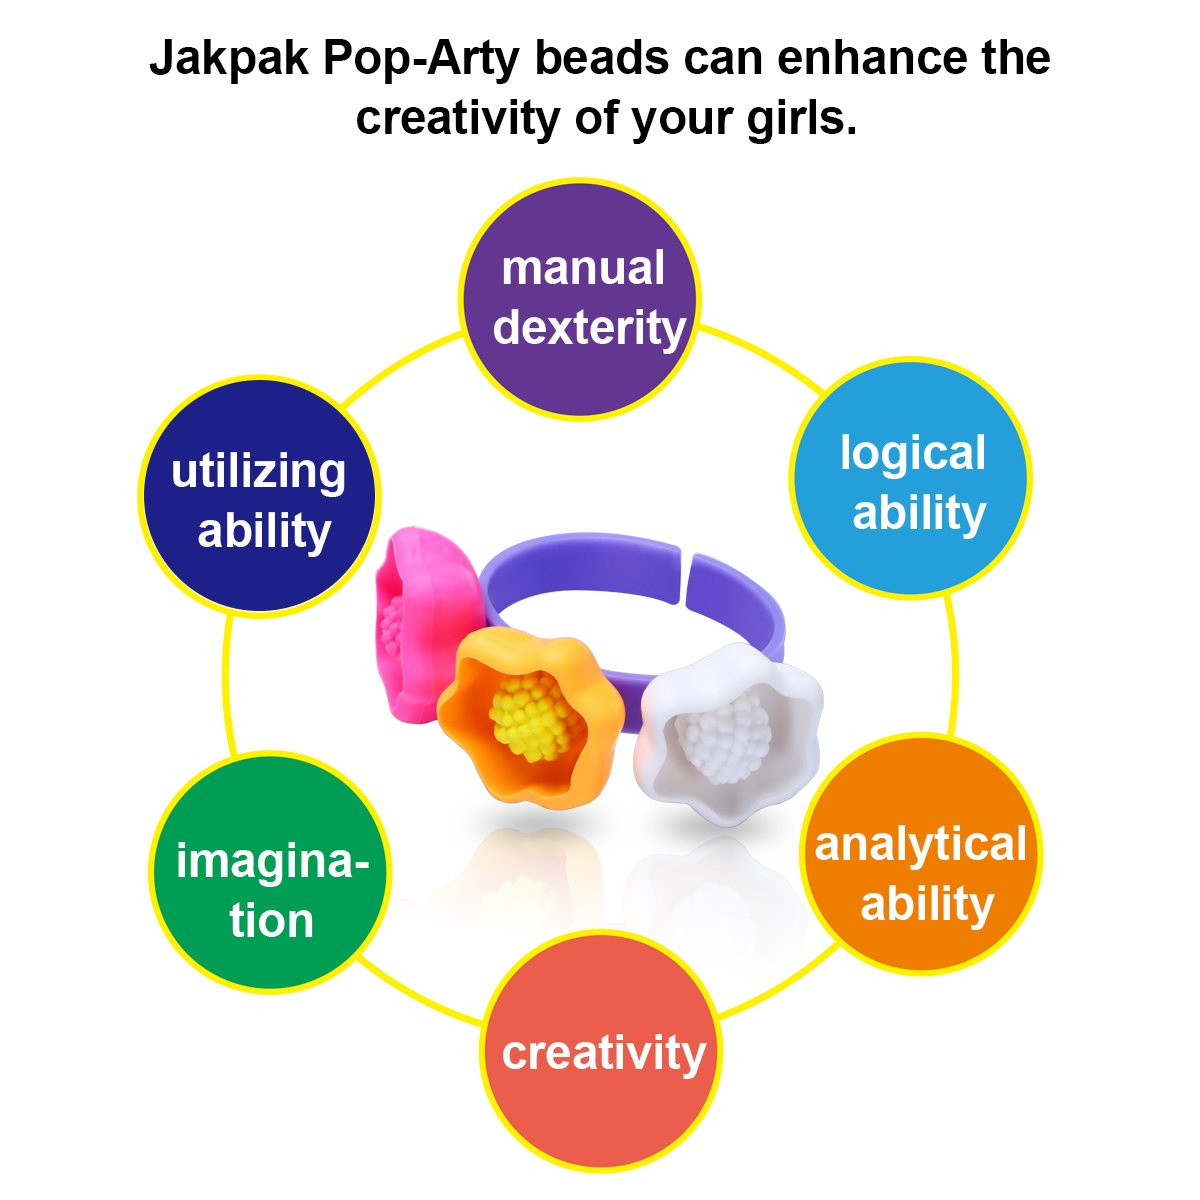 amazon com arts and crafts for girls jakpak bracelet jewelry amazon com arts and crafts for girls jakpak bracelet jewelry making kit 290pcs creativity for kids fashion games non toxic material made diy wear toys